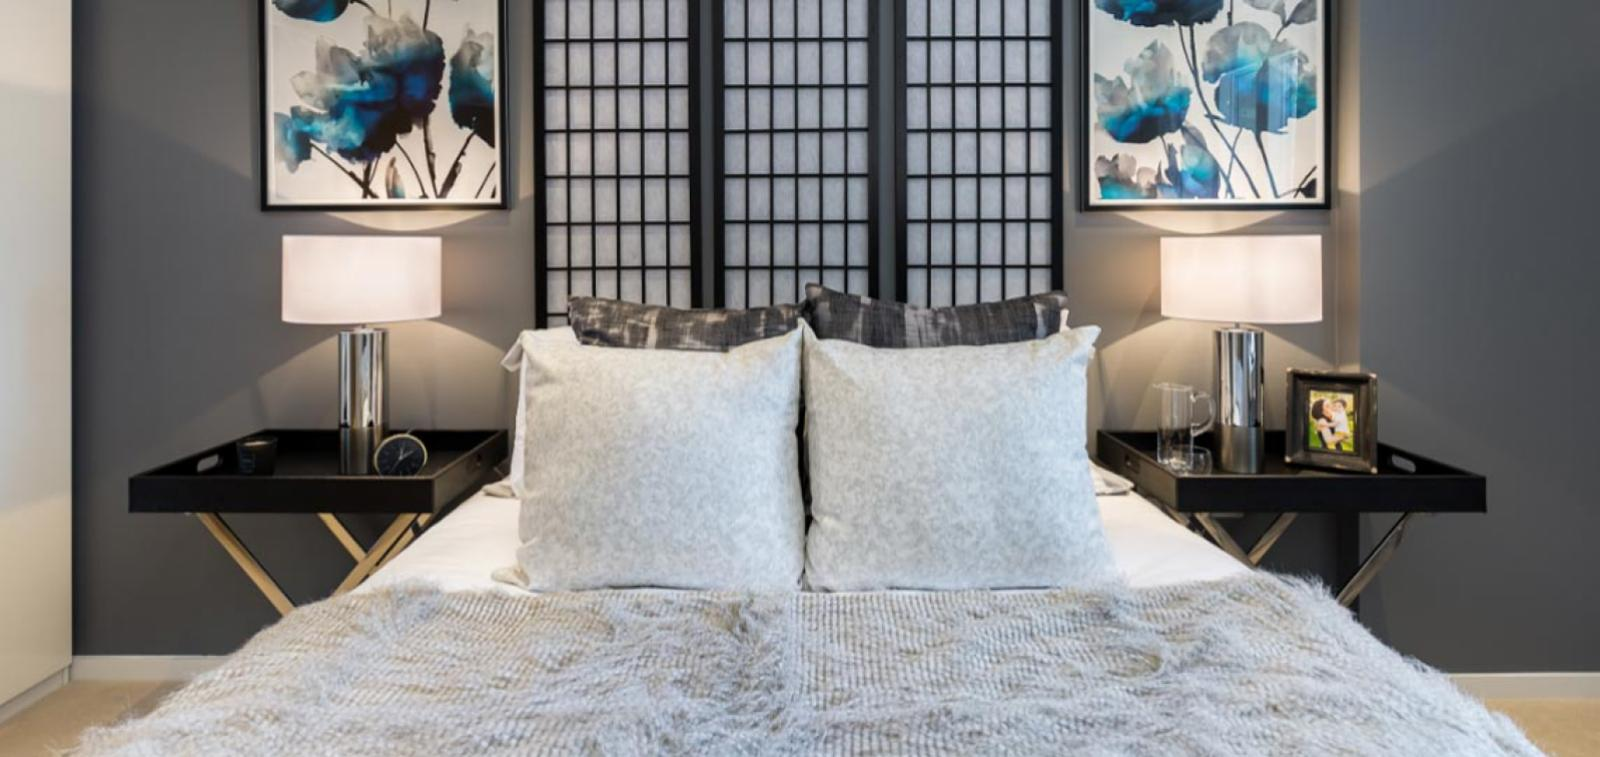 White bed with bedside tables